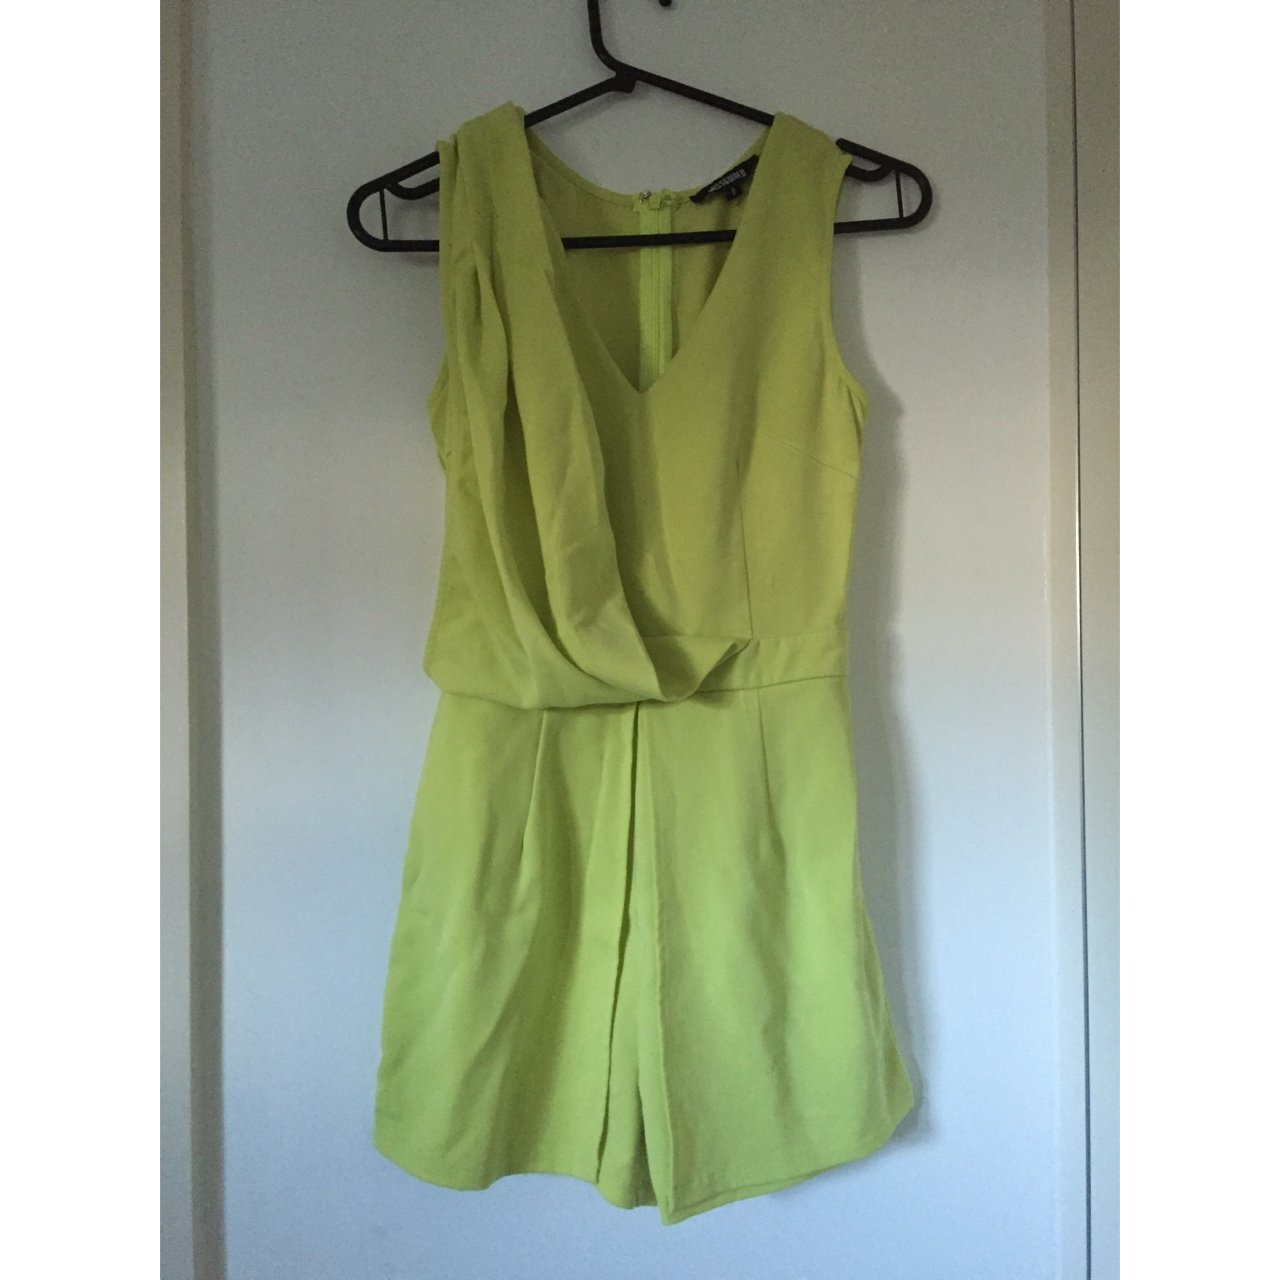 d1a1e46120 Missguided unique style playsuit in like green. US 4  UK 8. - Depop